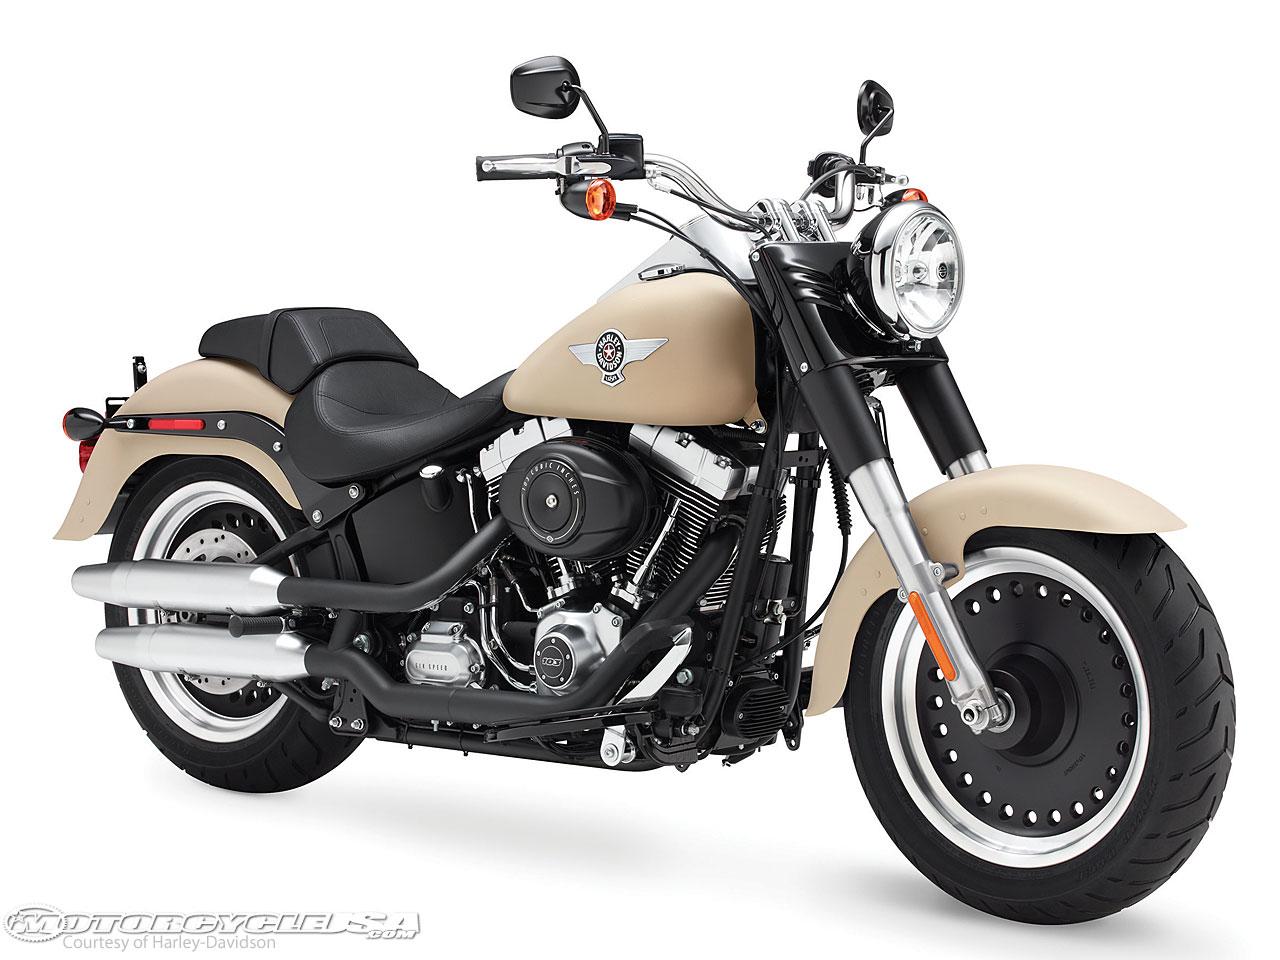 Harley-Davidson introduced a new braking package for its Softail models, with bikes like the 2015 Fat Boy Lo receiving a rigid four-piston fixed front brake ...